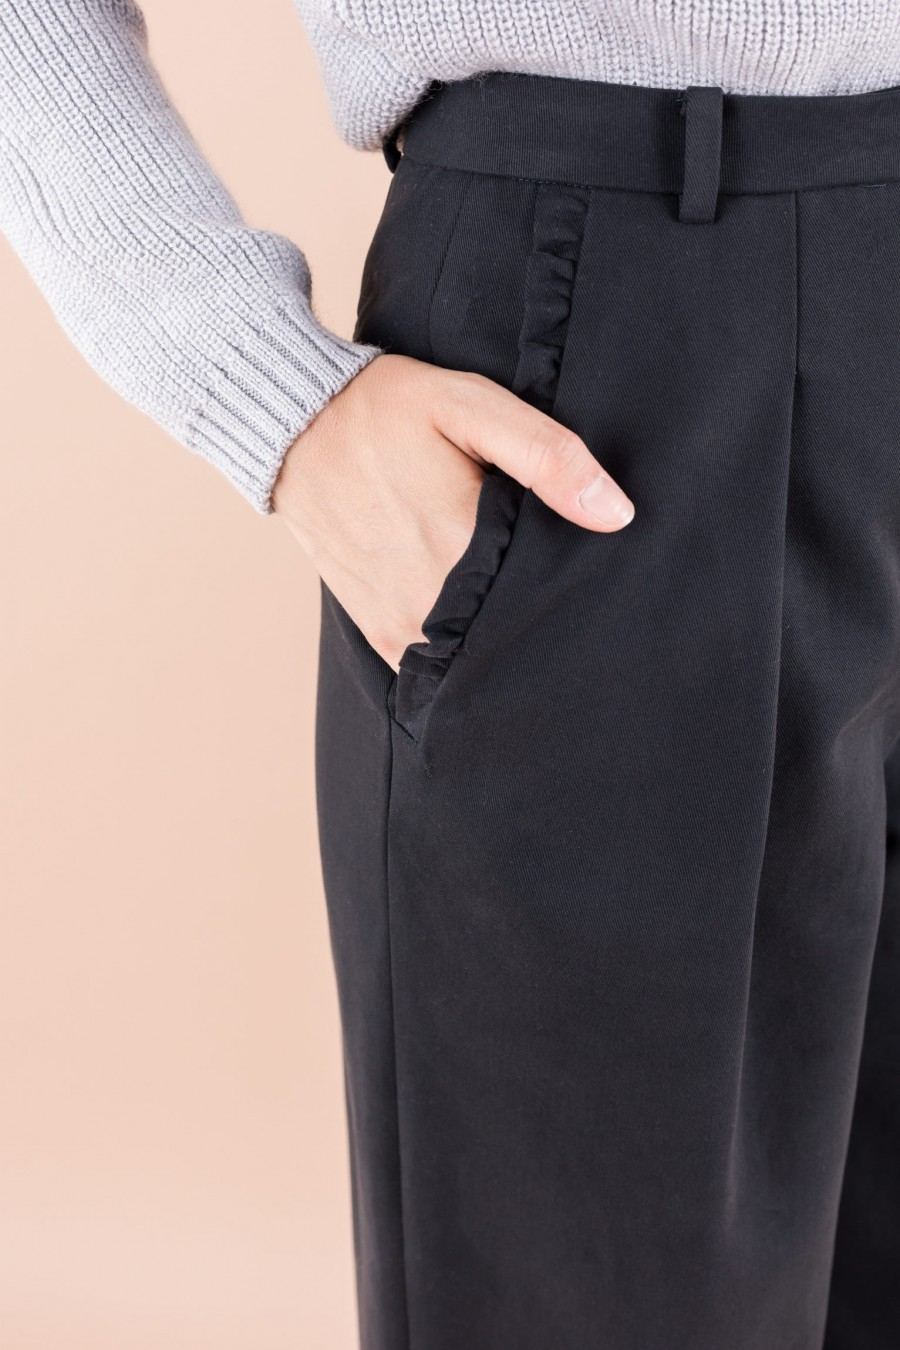 Blue trousers with ruffles on the pockets